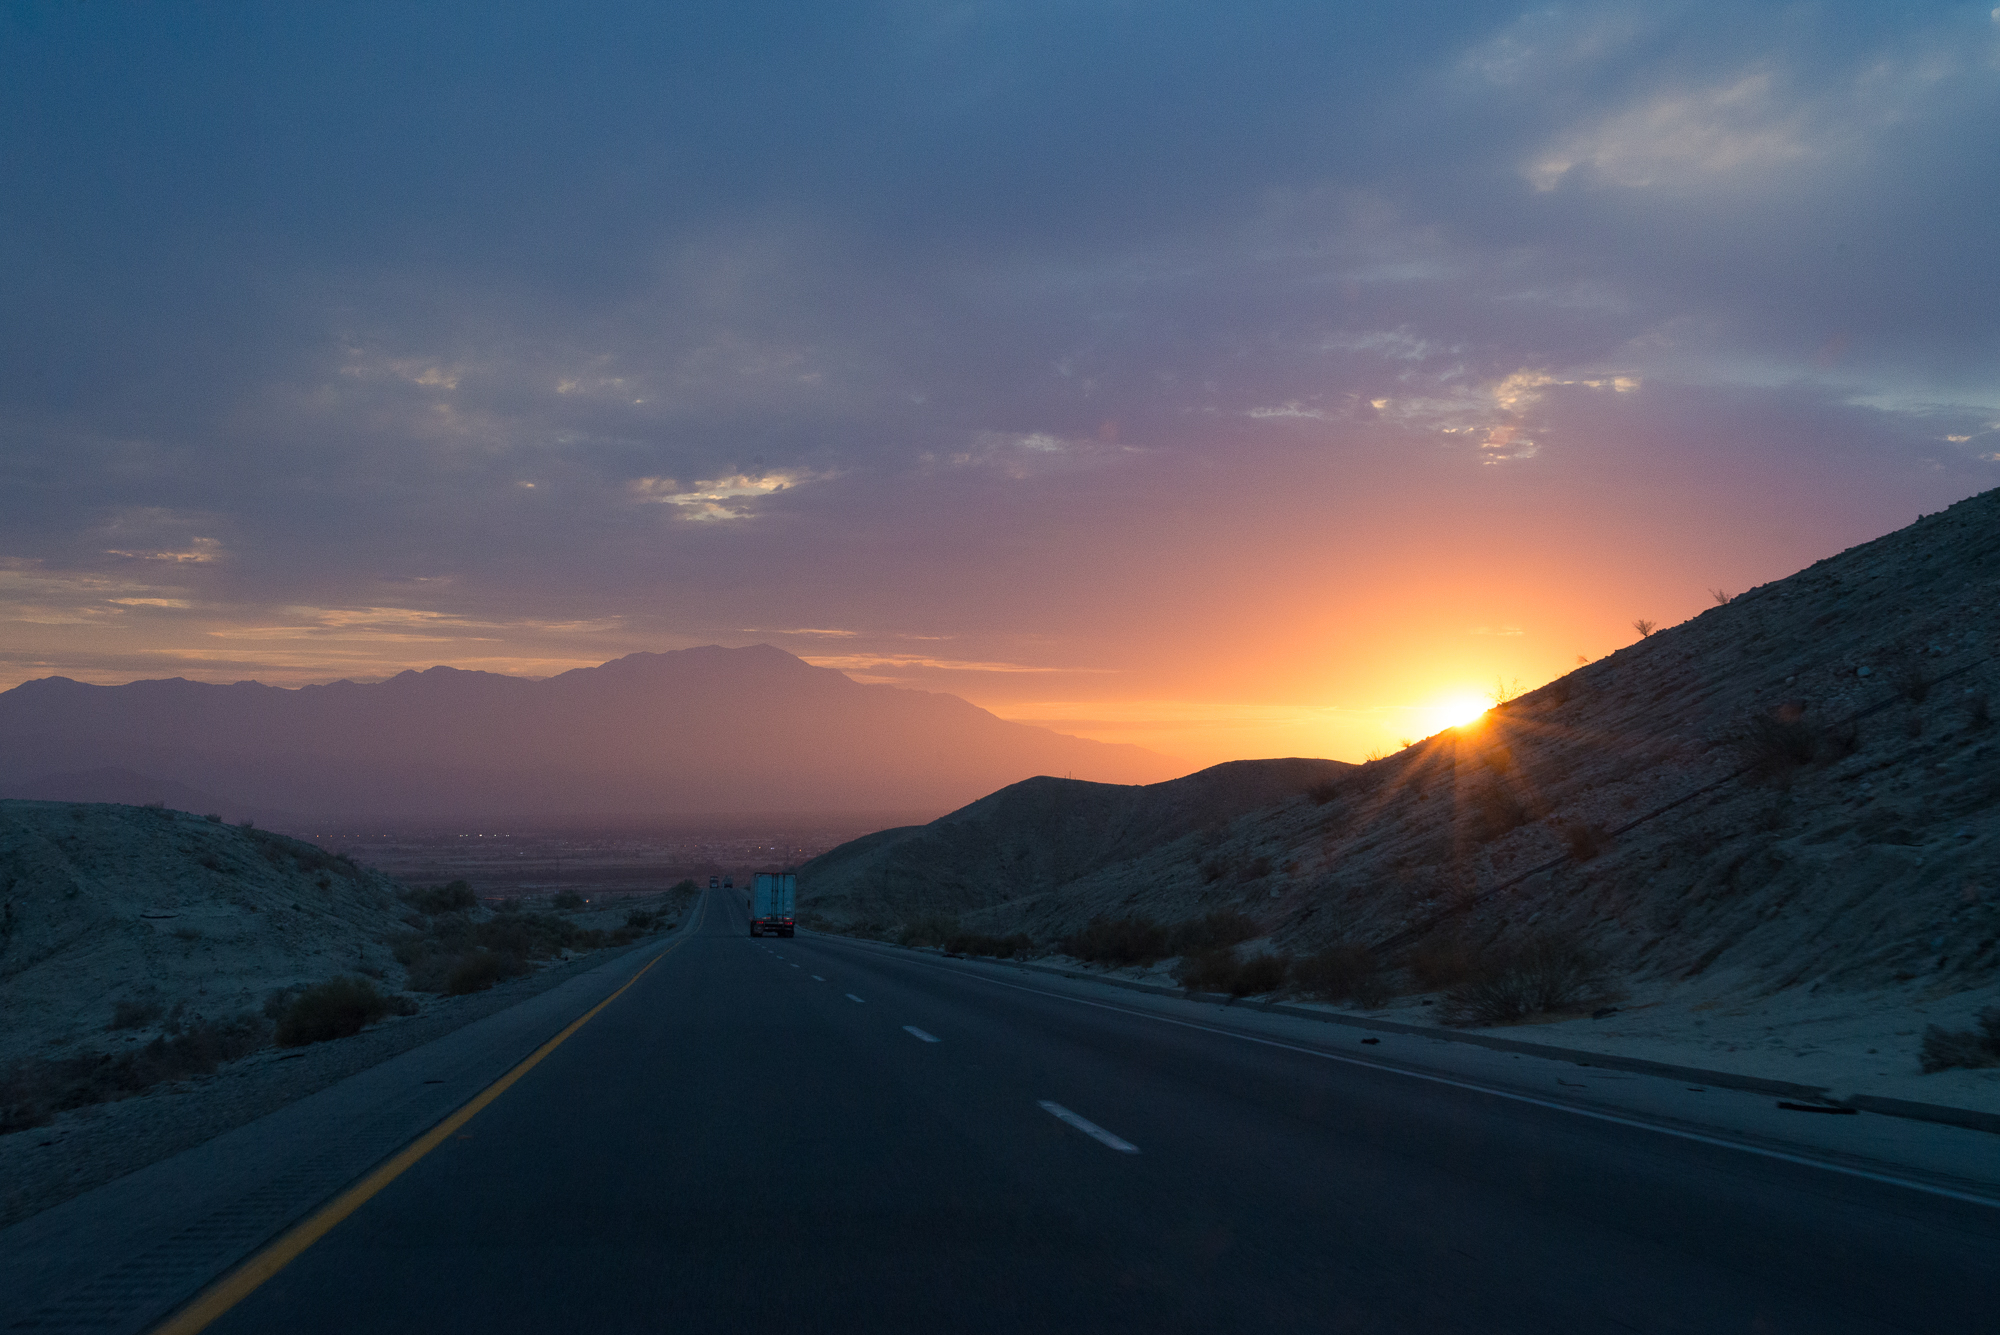 Sunset on the highway outside of Palm Desert, CA